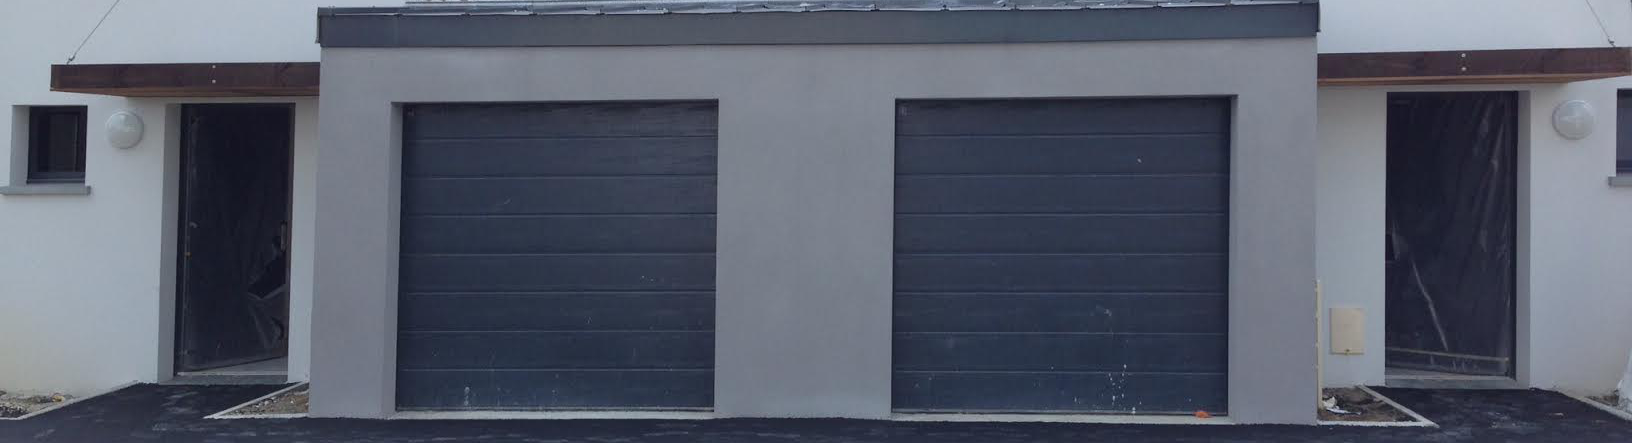 Porte de garage sectionnelle grise anthracite andernos for Porte de service gris anthracite